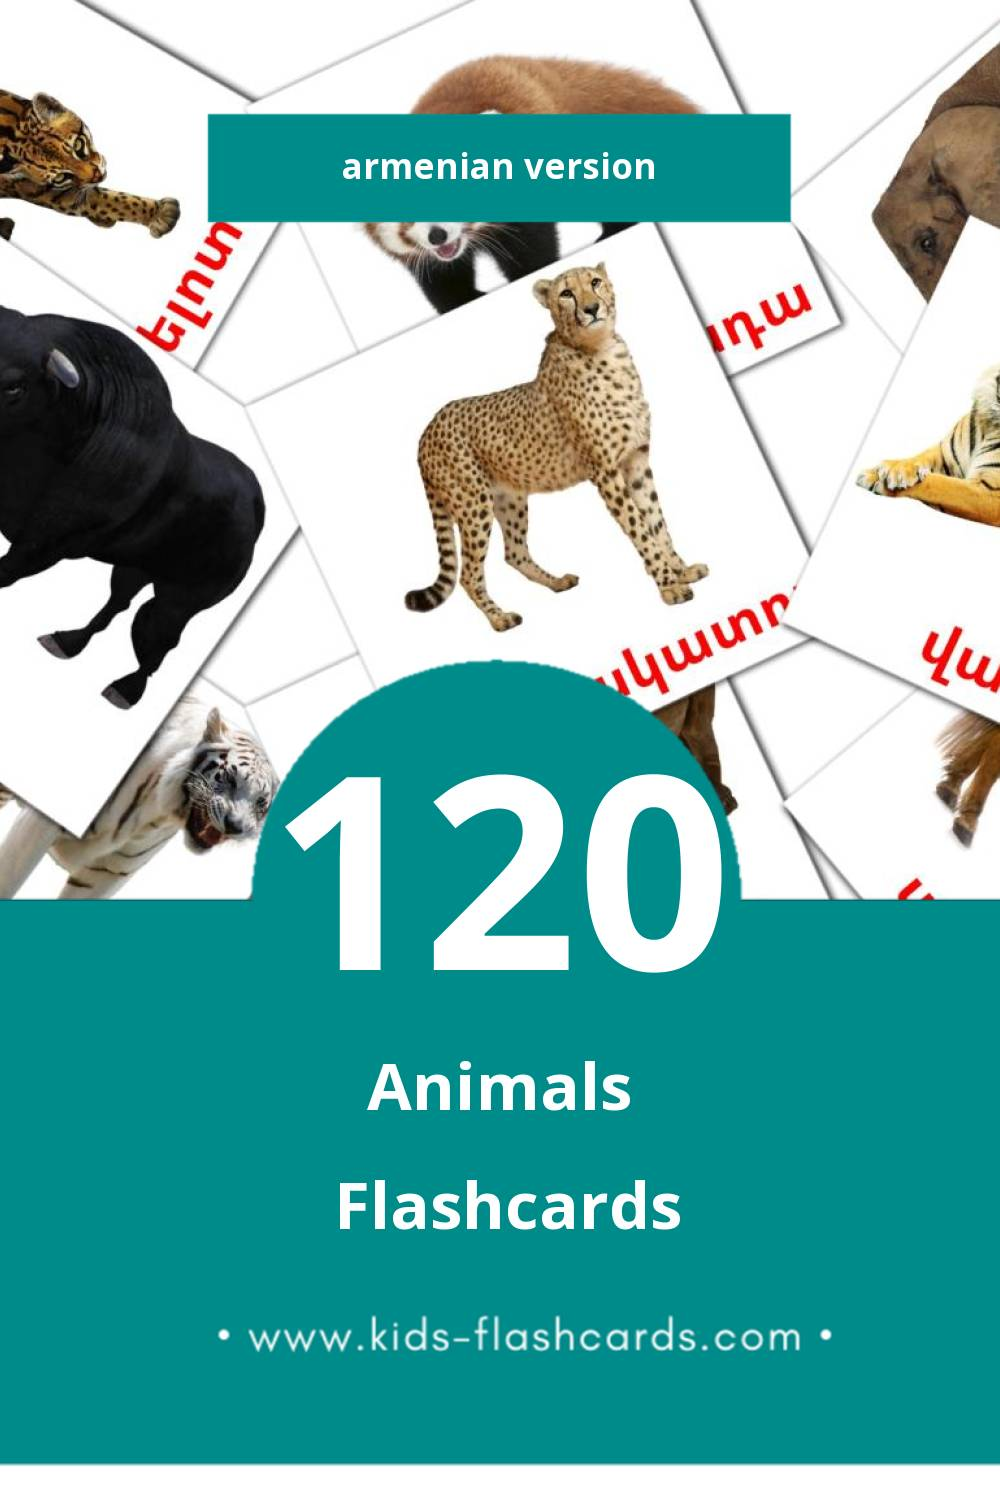 Visual Animales Flashcards for Toddlers (46 cards in Armenian)